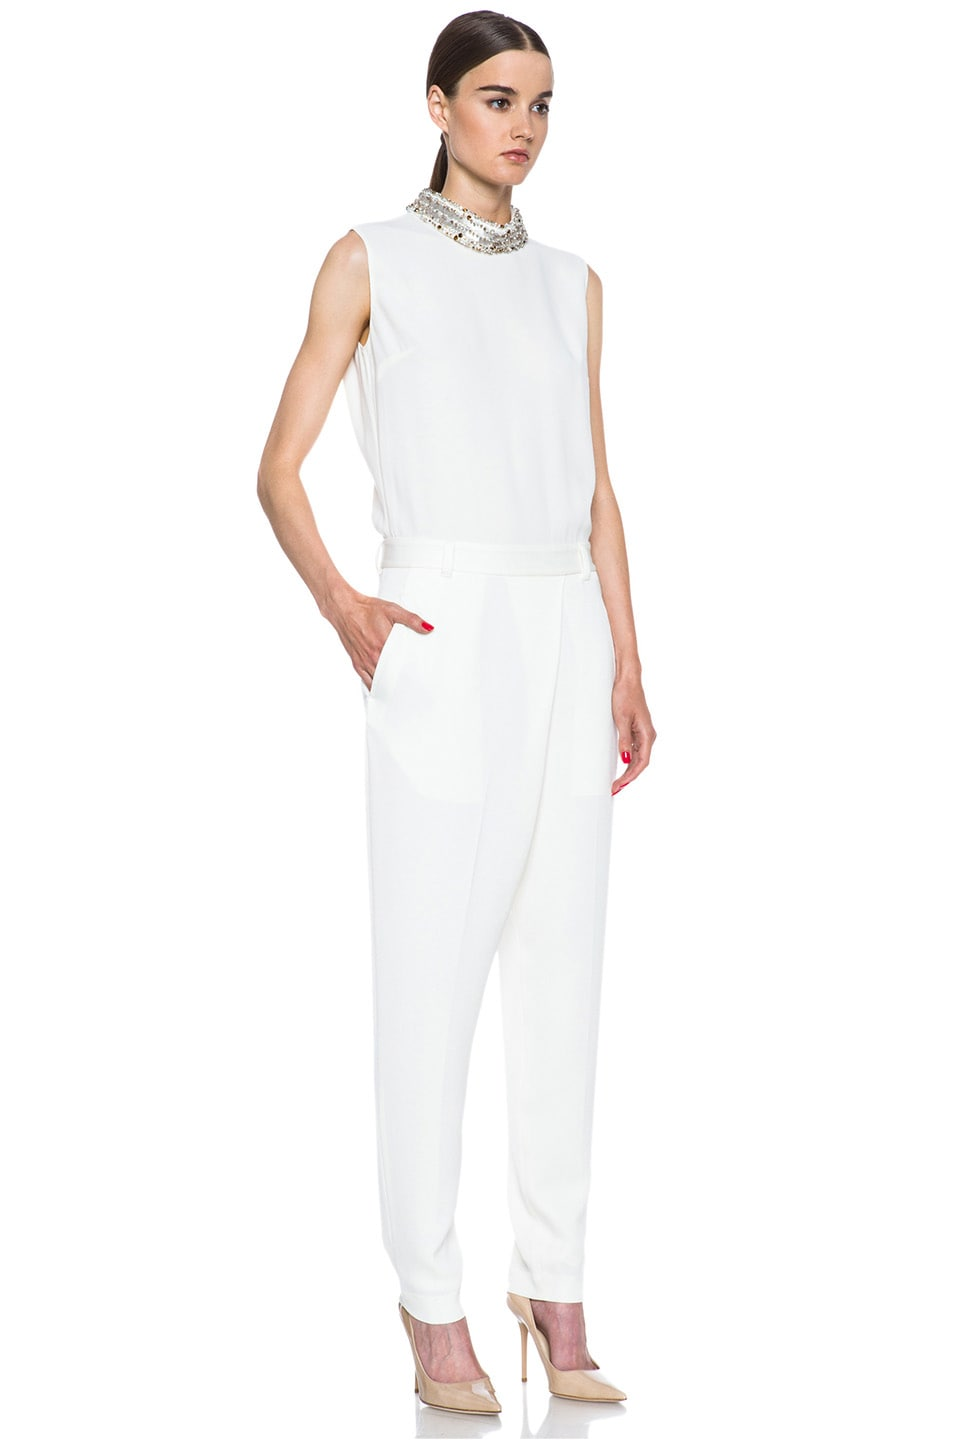 Image 3 of 3.1 phillip lim Acetate-Blend Jumpsuit in Ivory